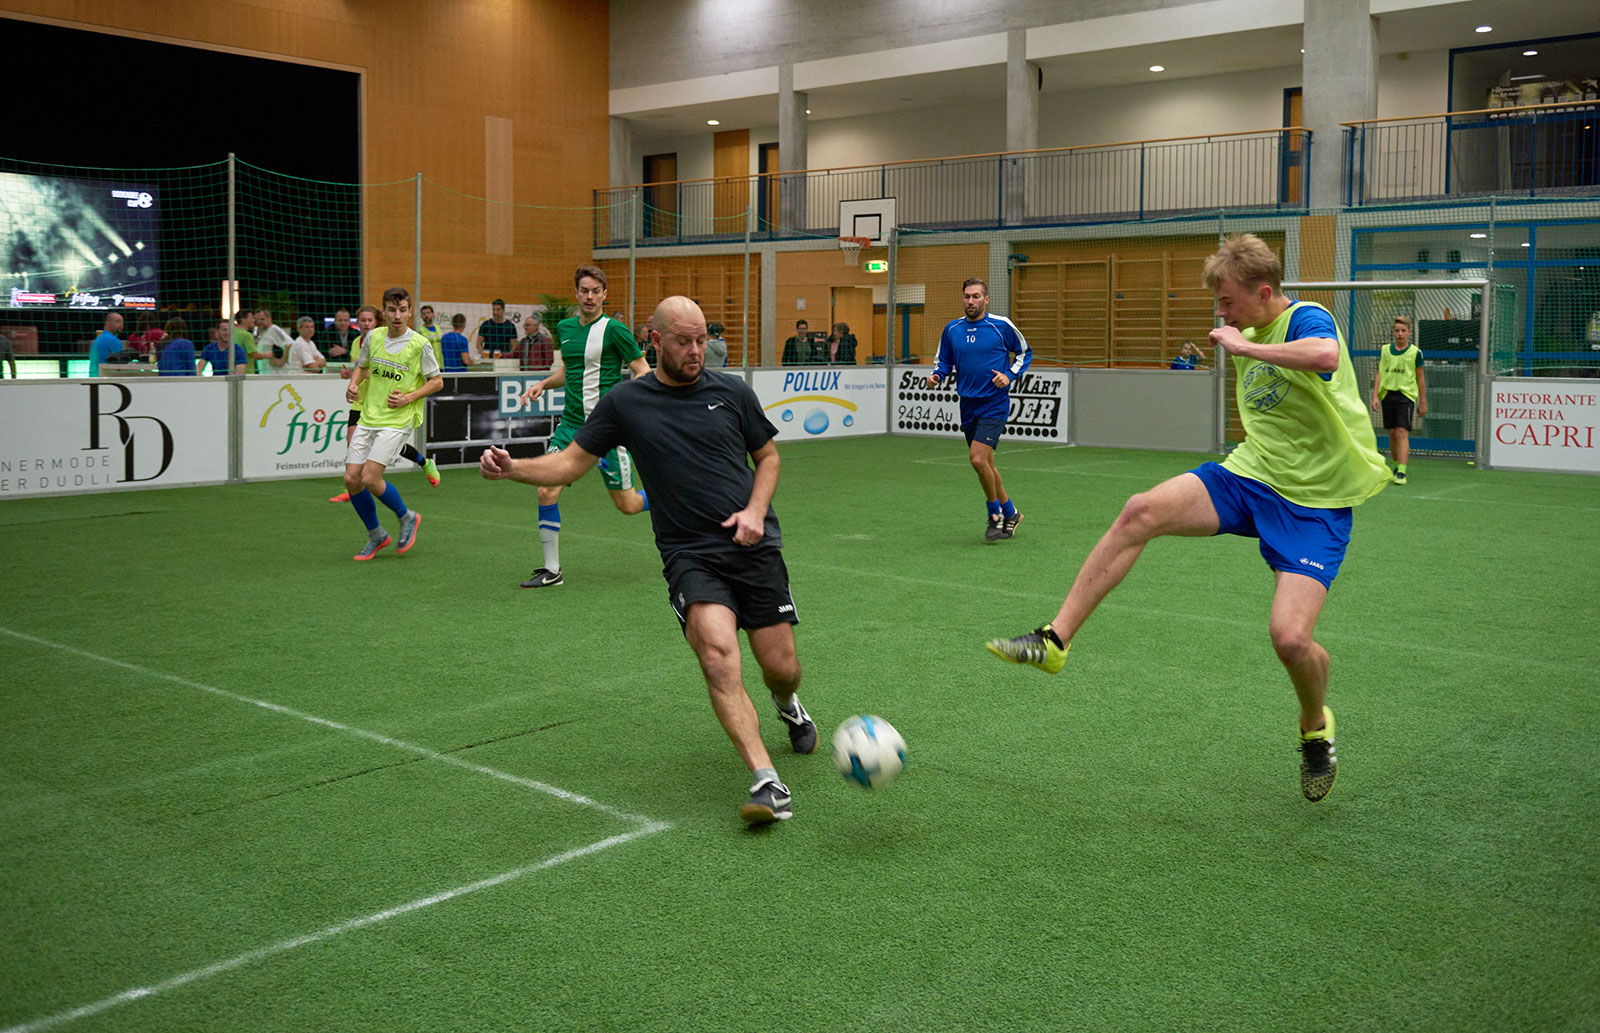 Bodensee-Cup_20171110_215409.jpg